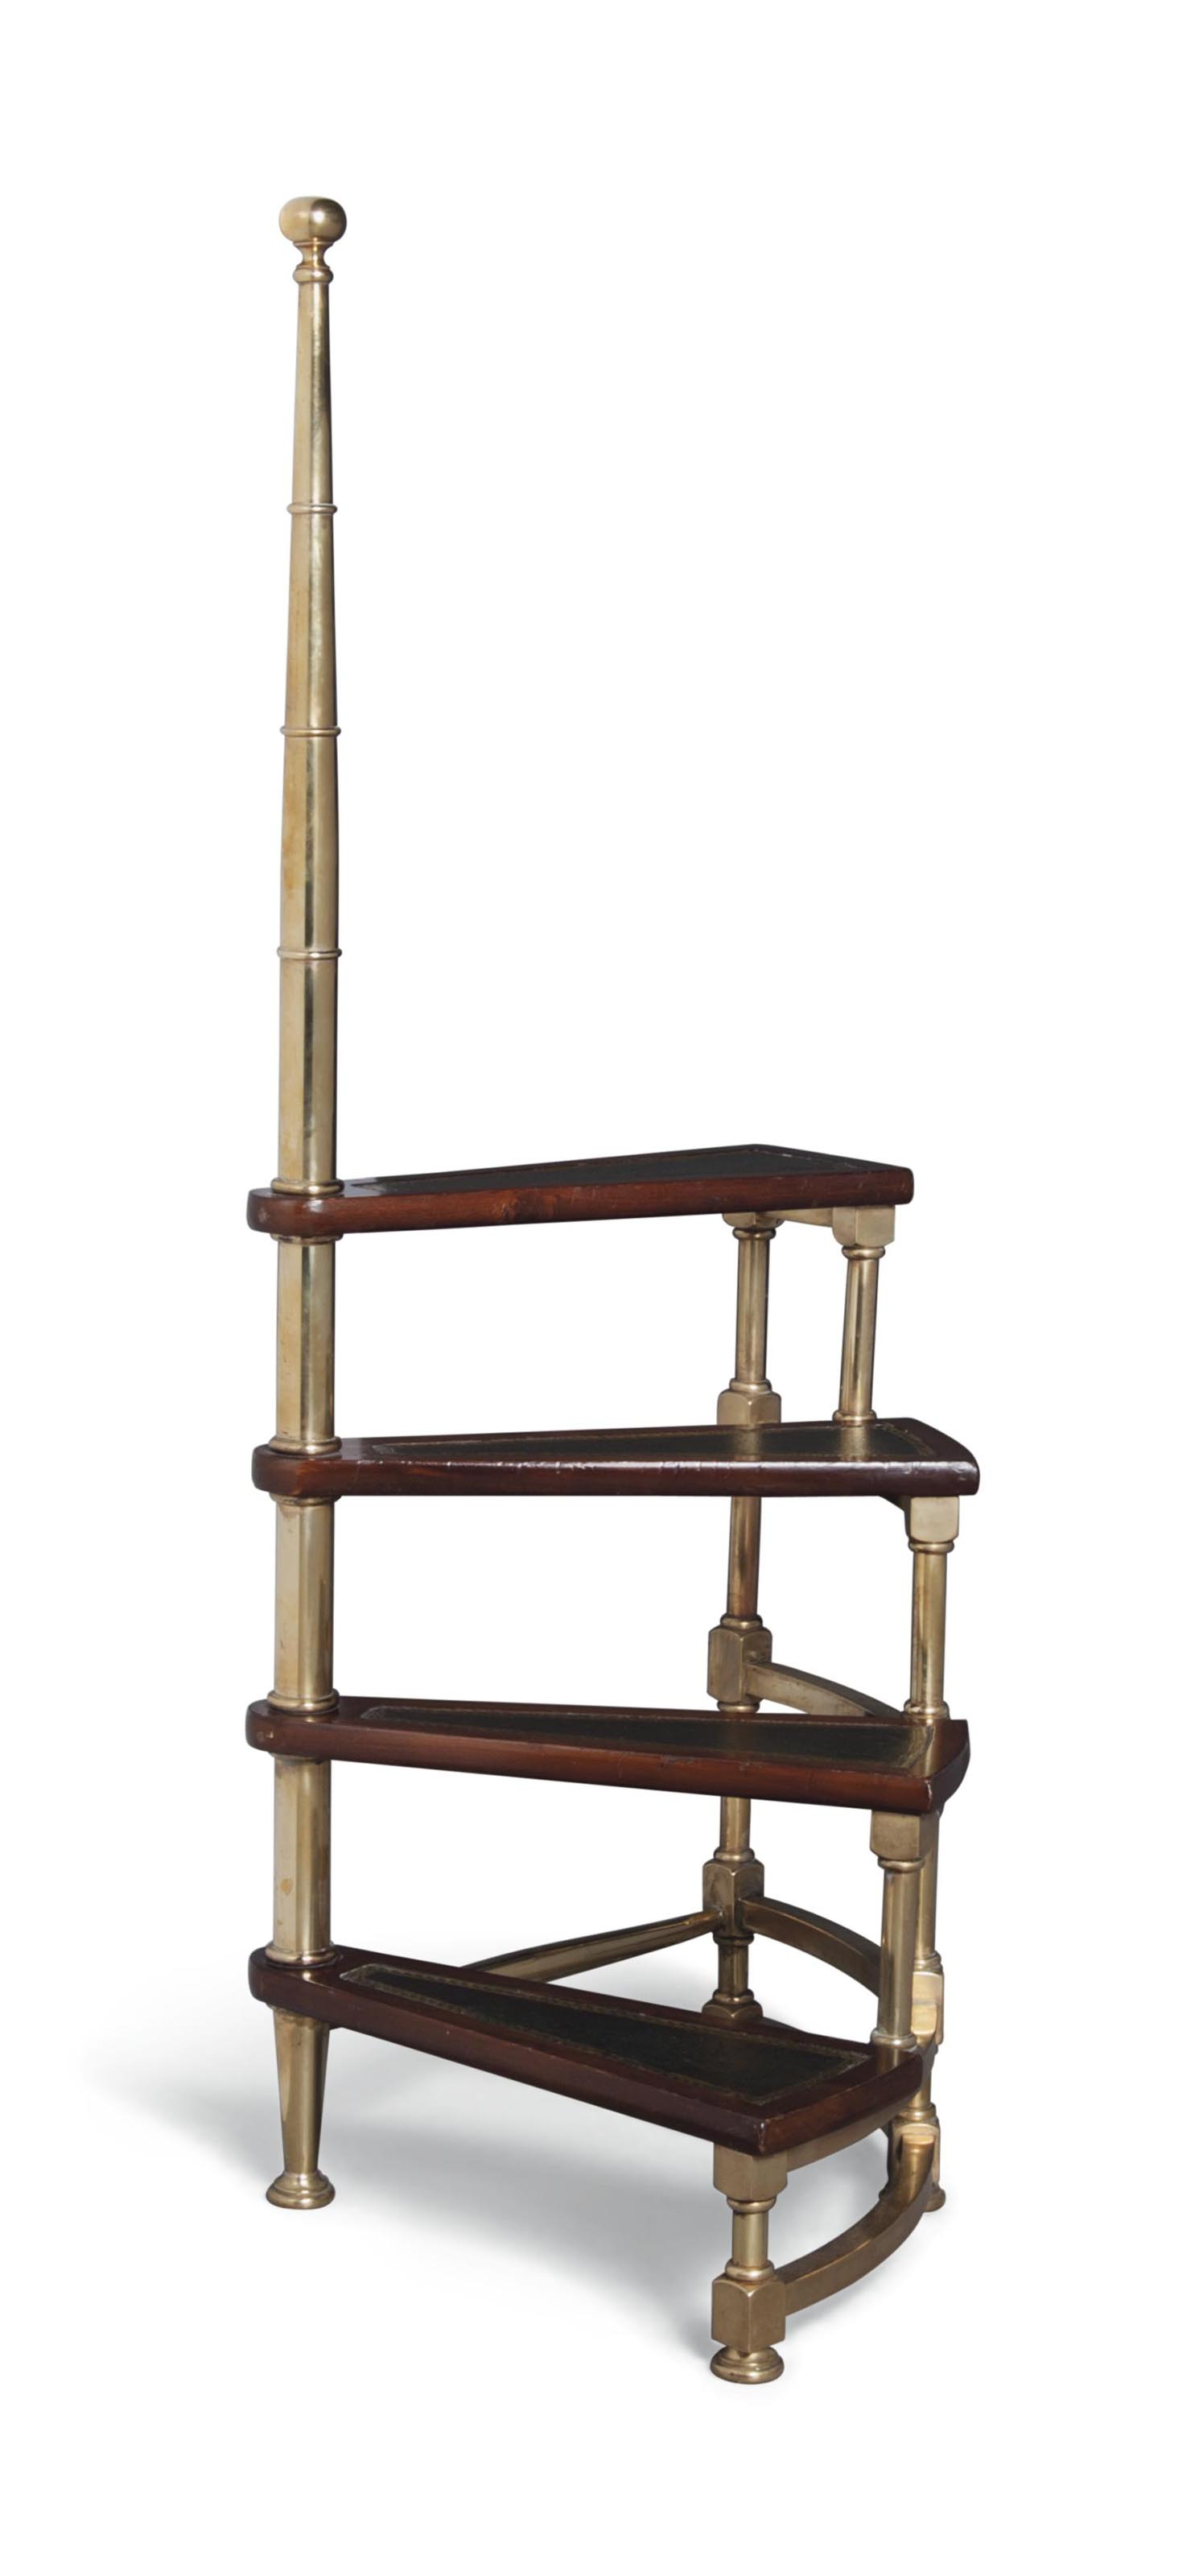 AN ITALIAN BRASS AND WALNUT LI